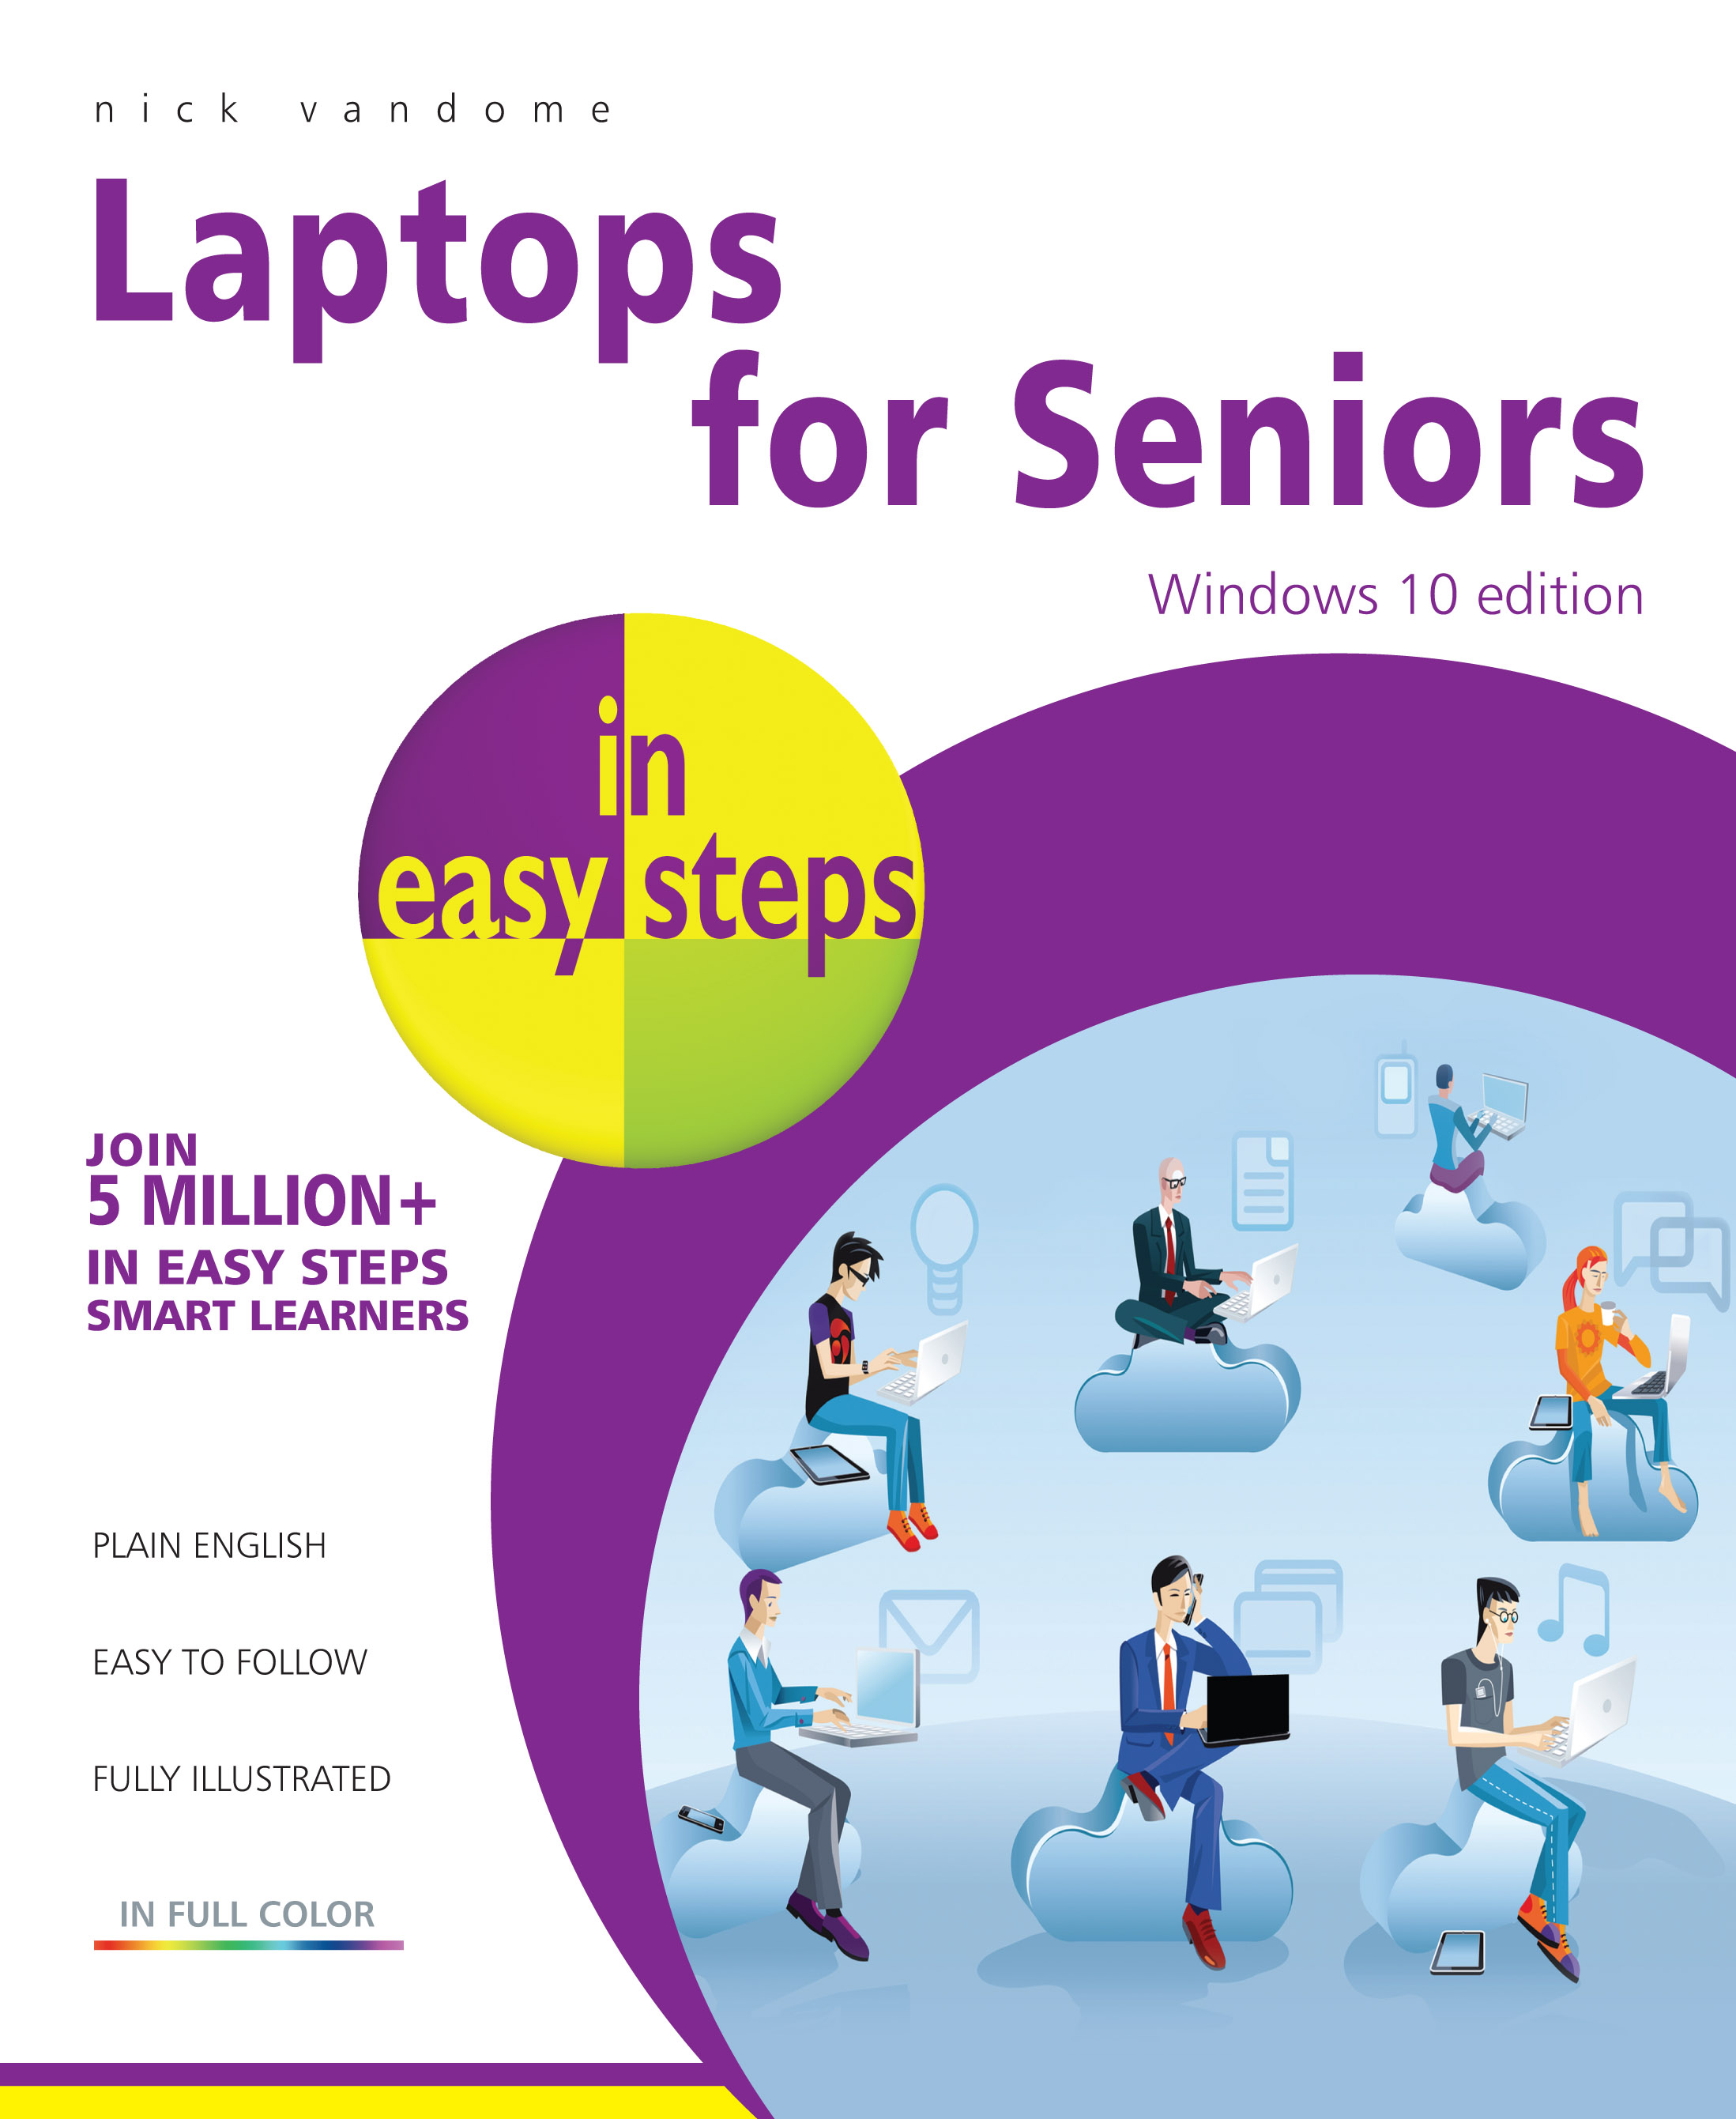 Laptops for Seniors in easy steps - Windows 10 Edition 9781840786477 PDF